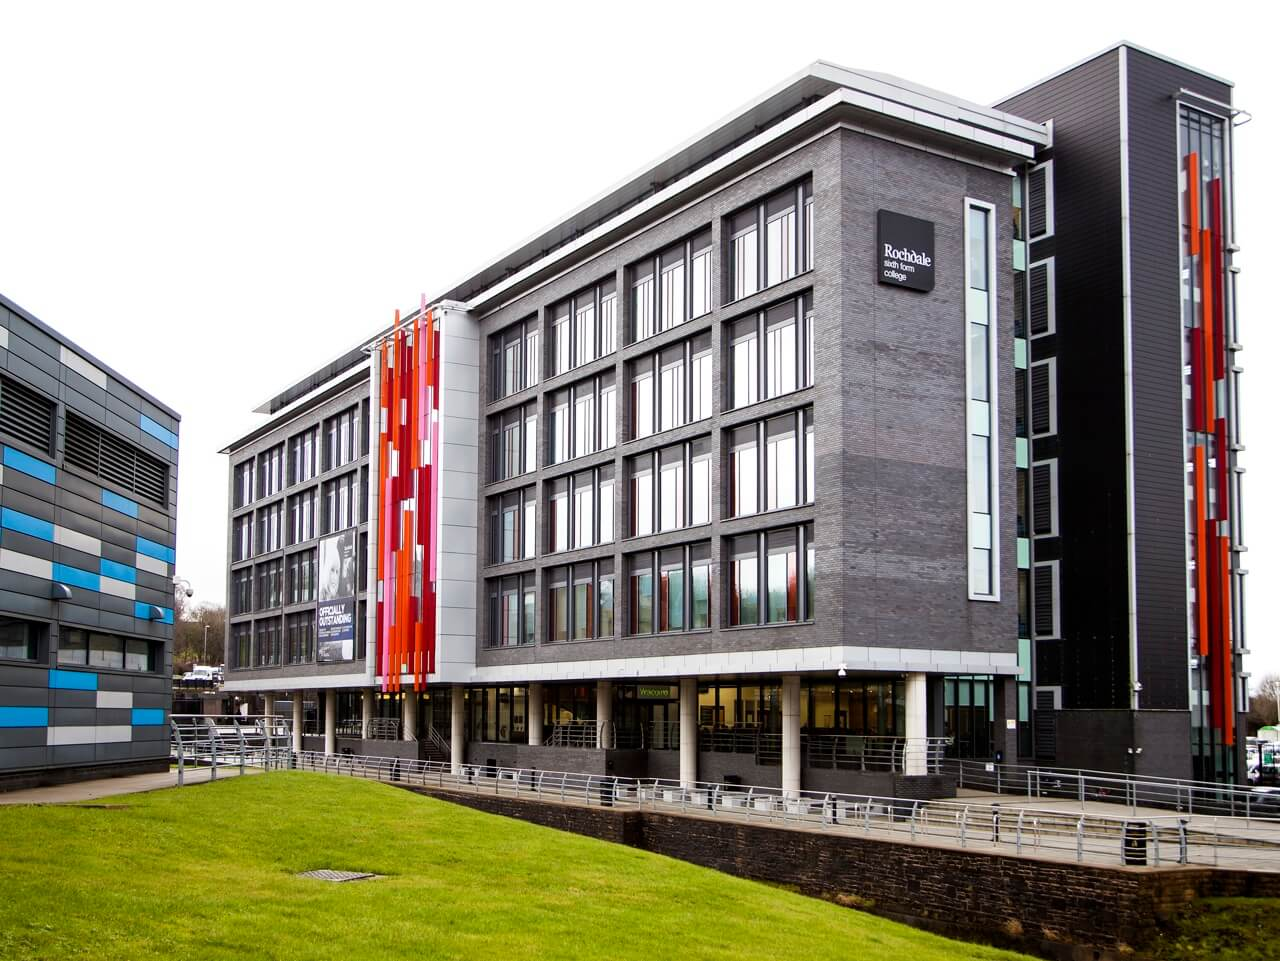 External view of Rochdale Sixth Form College